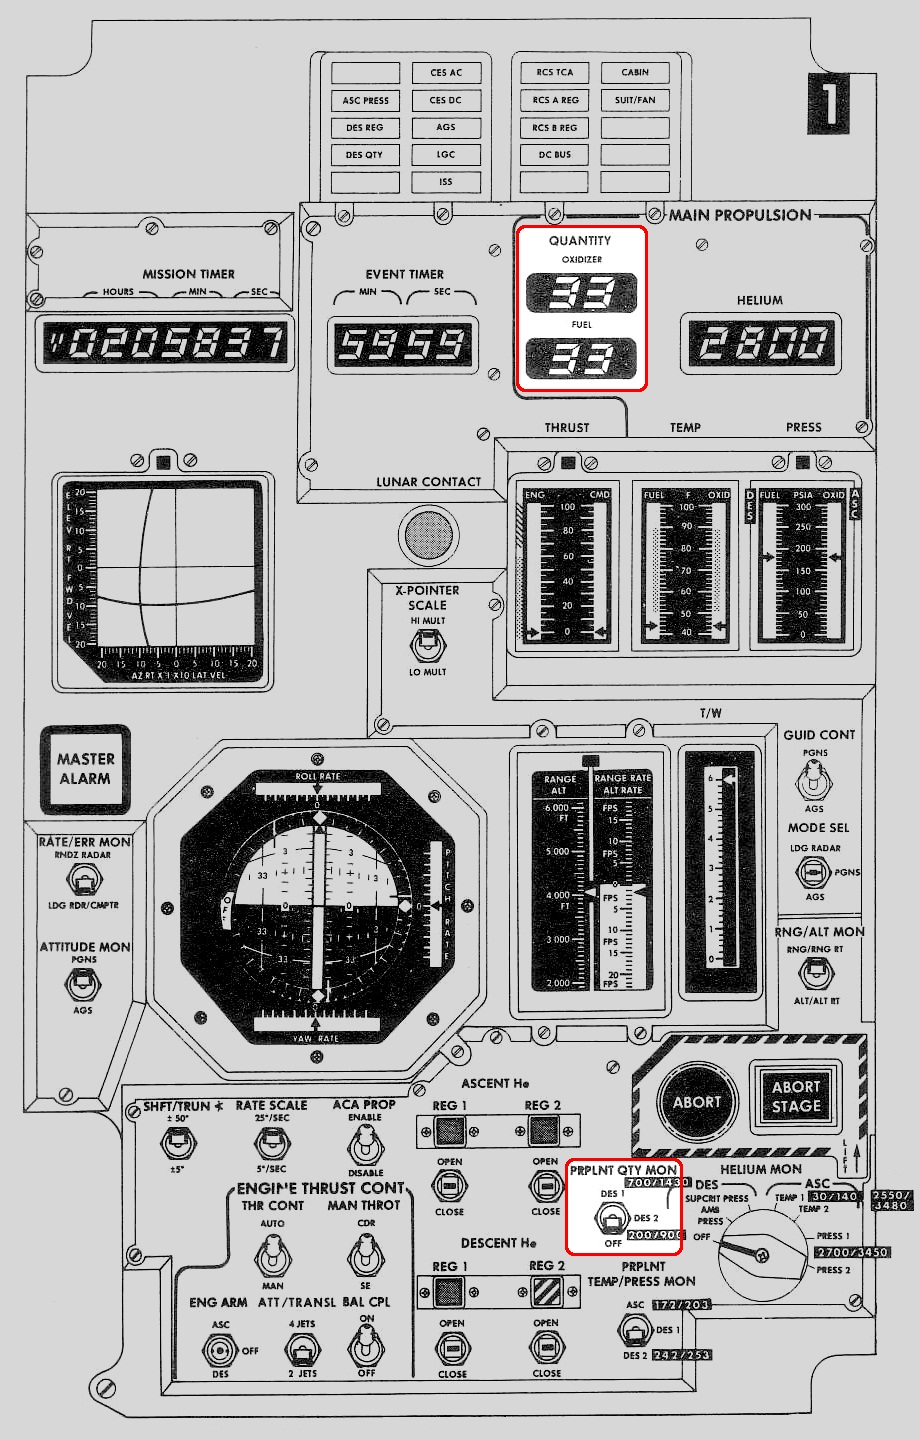 The First Lunar Landing Wiring Diagrams For A H 50 11 Lift Master Journal Contributor Paul Fjeld Up On Cdrs